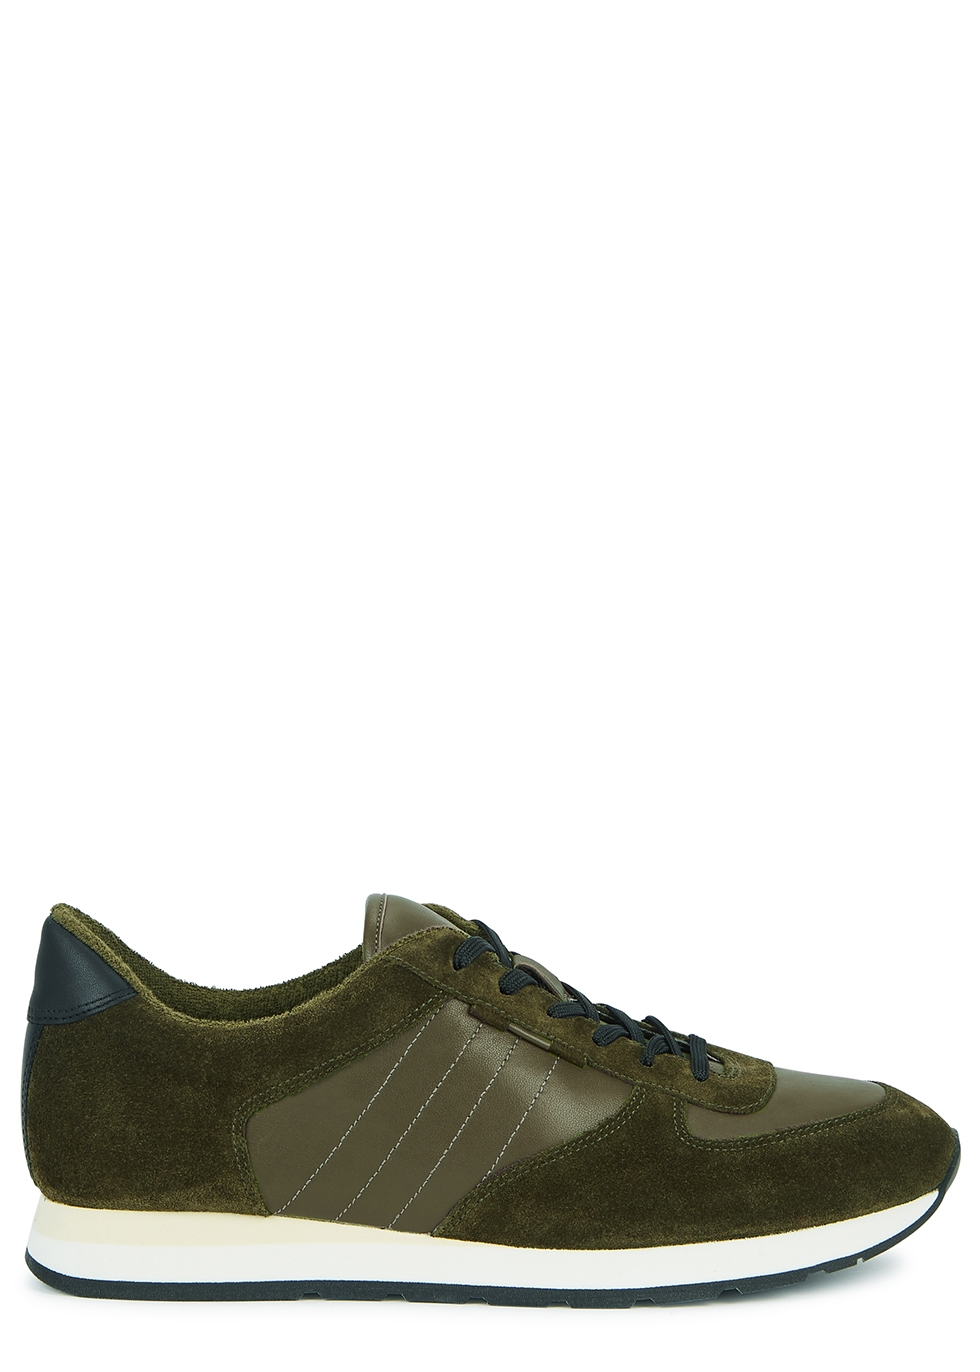 Pasha green leather and suede sneakers